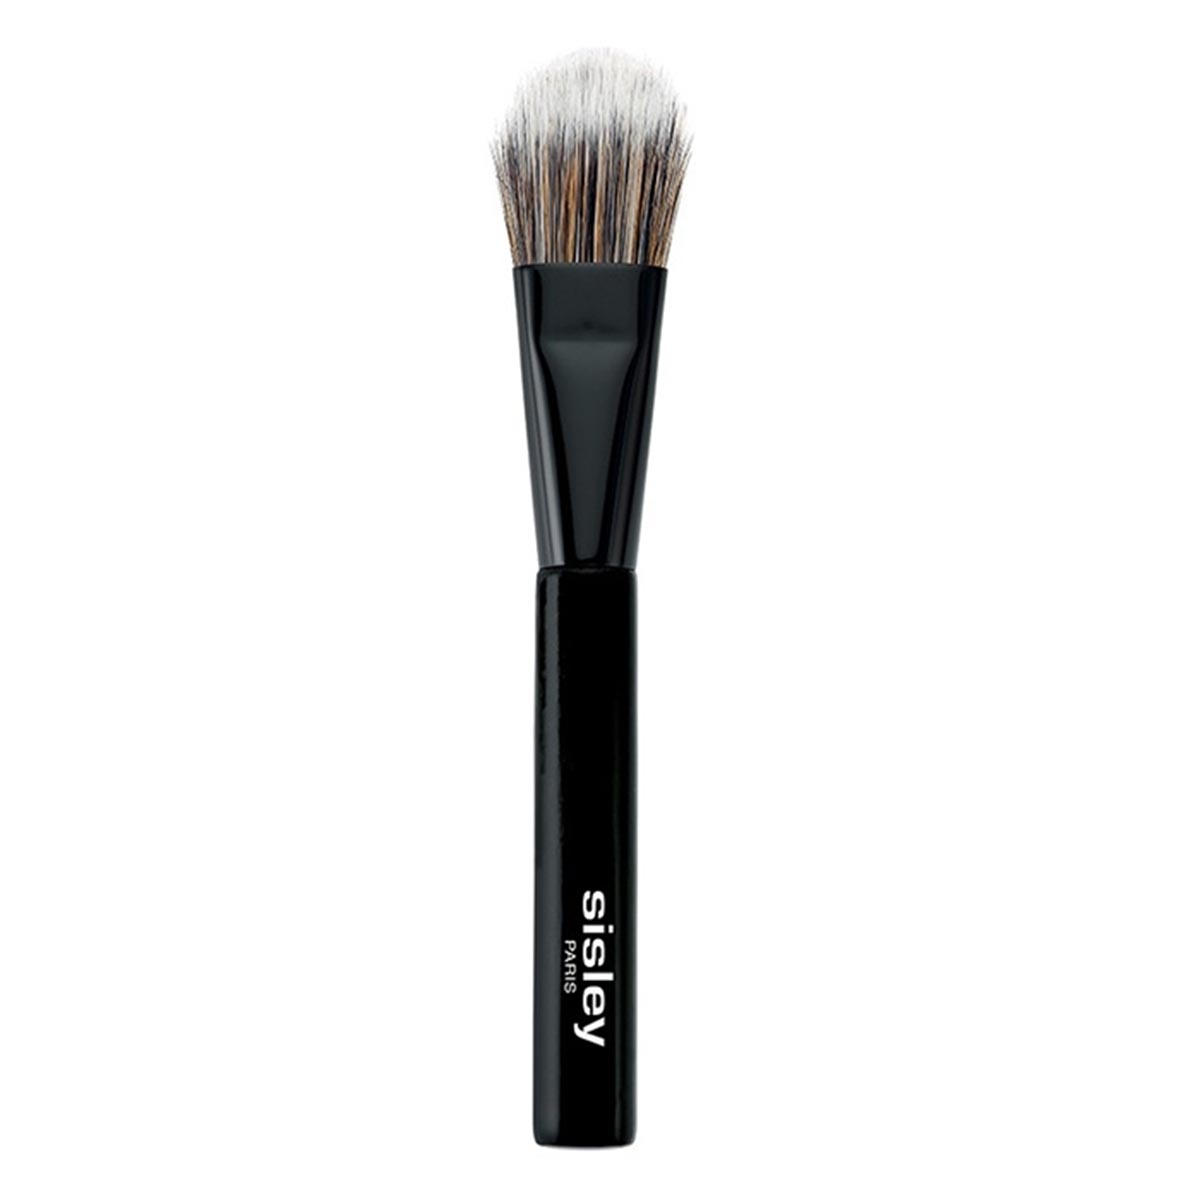 Sisley fluid foundation brush 1u